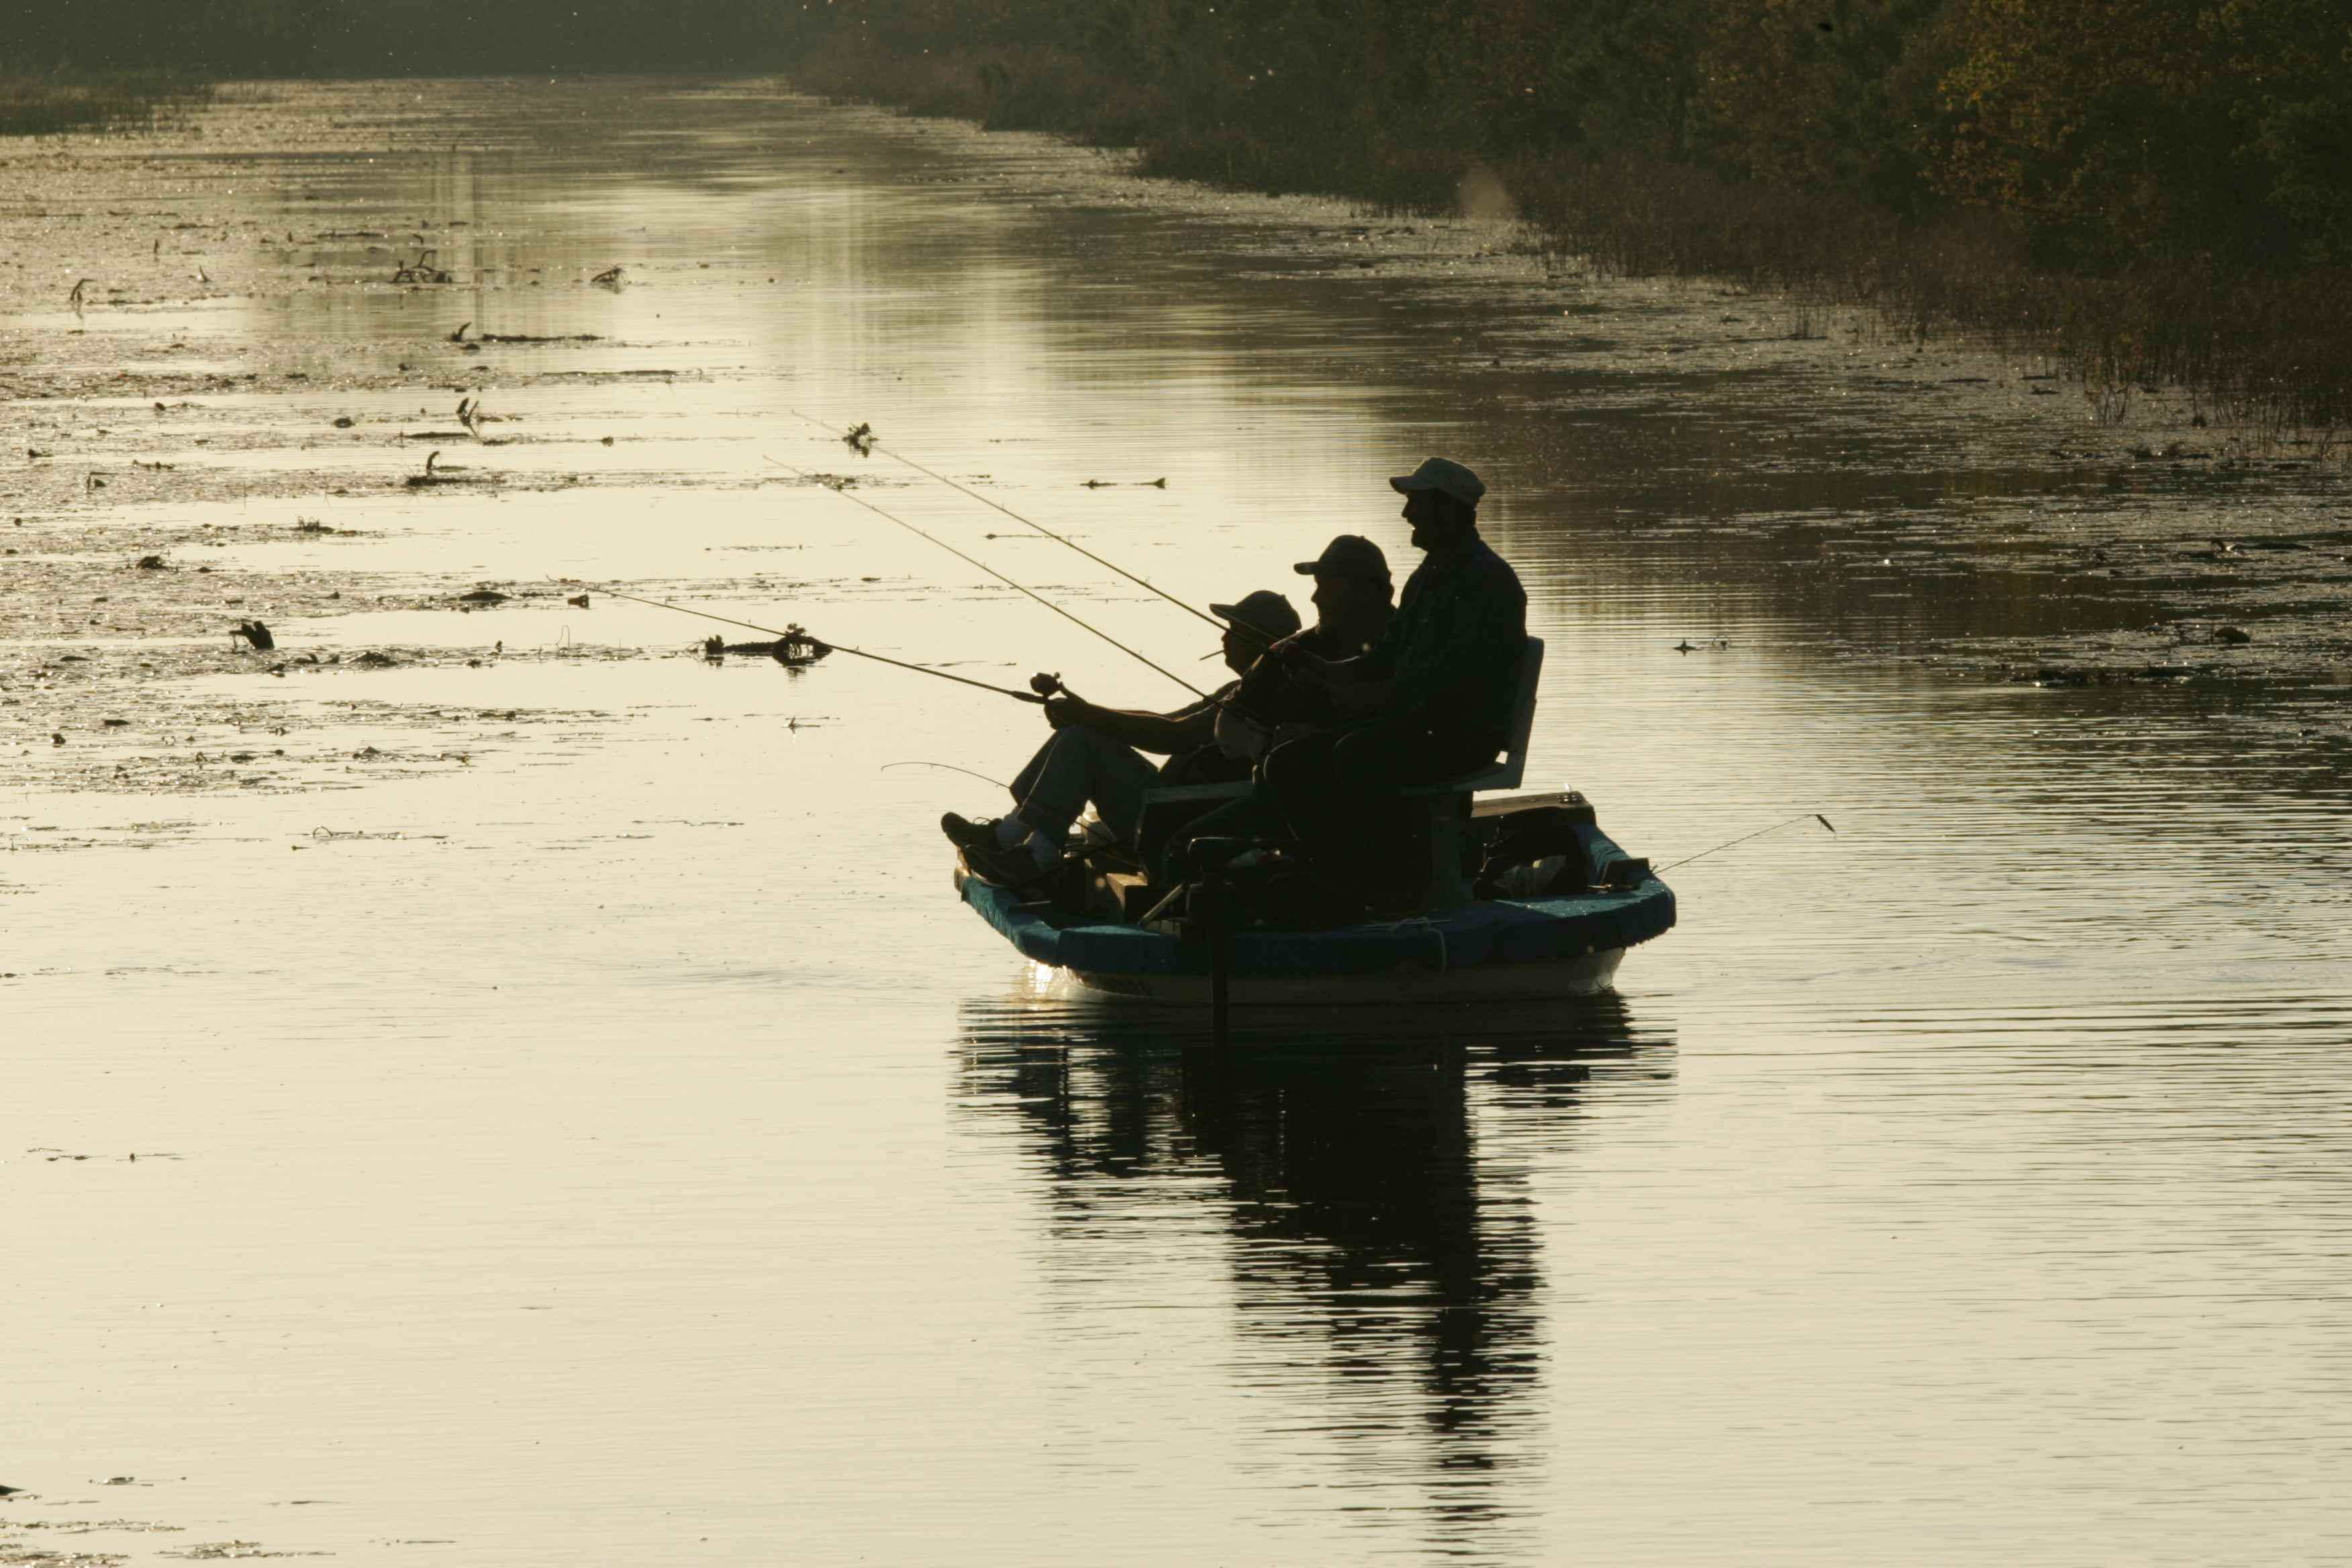 Three_men_in_silhouette_against_glassy_water_fishing_from_boat